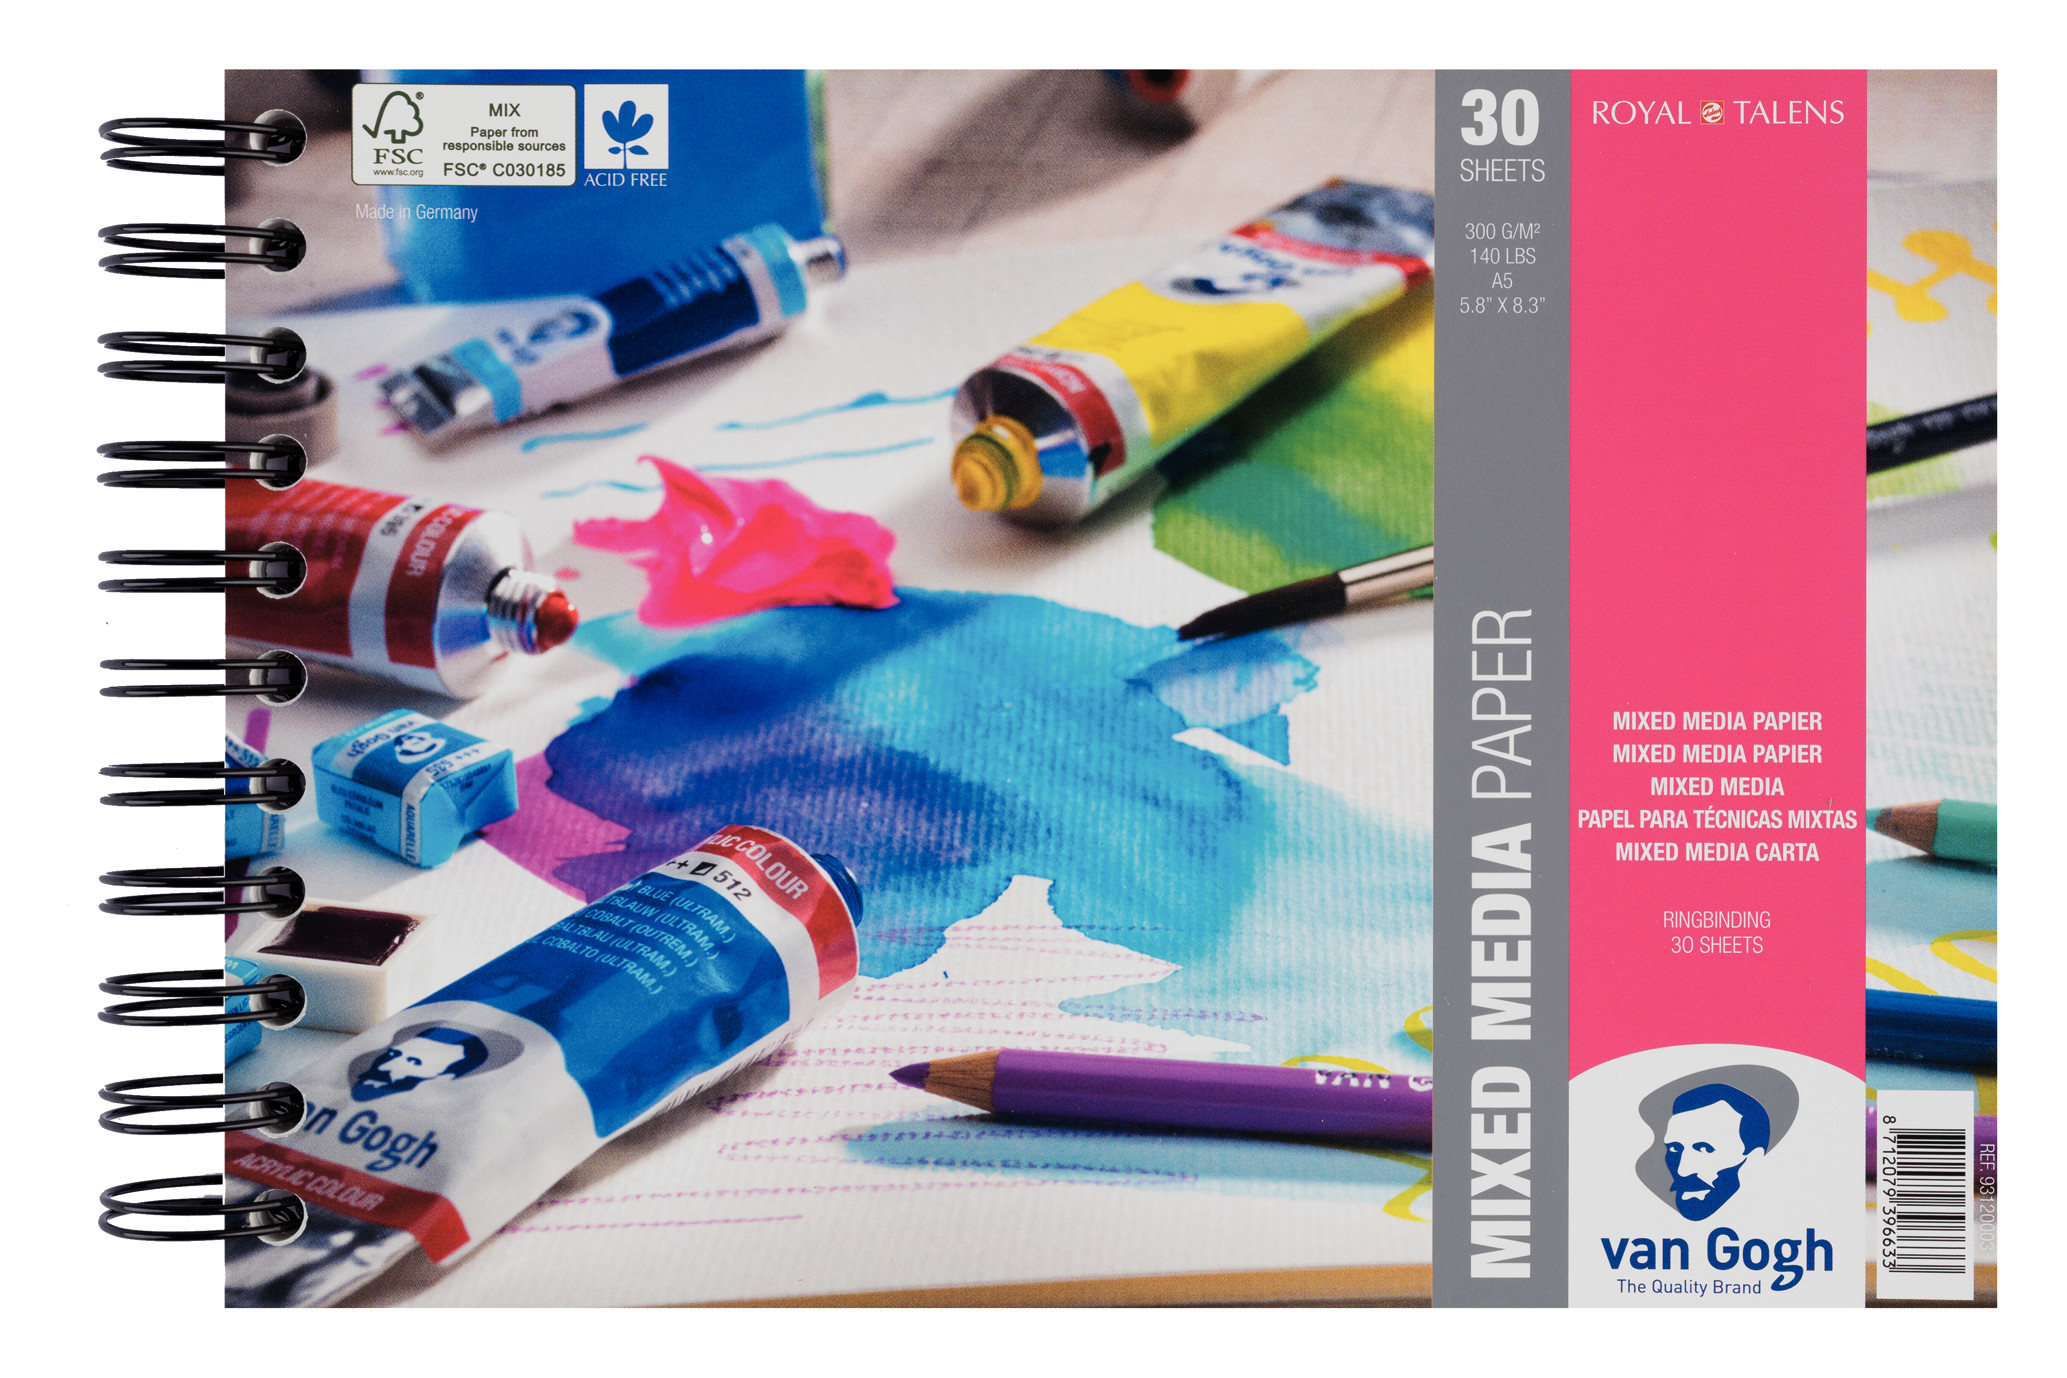 Van Gogh Mixed Media Paper Spiral Bound Pad, 30 Sheets, 300g/140lb., size 21 x 14,8cm (A5) / 5.8 x 8.3